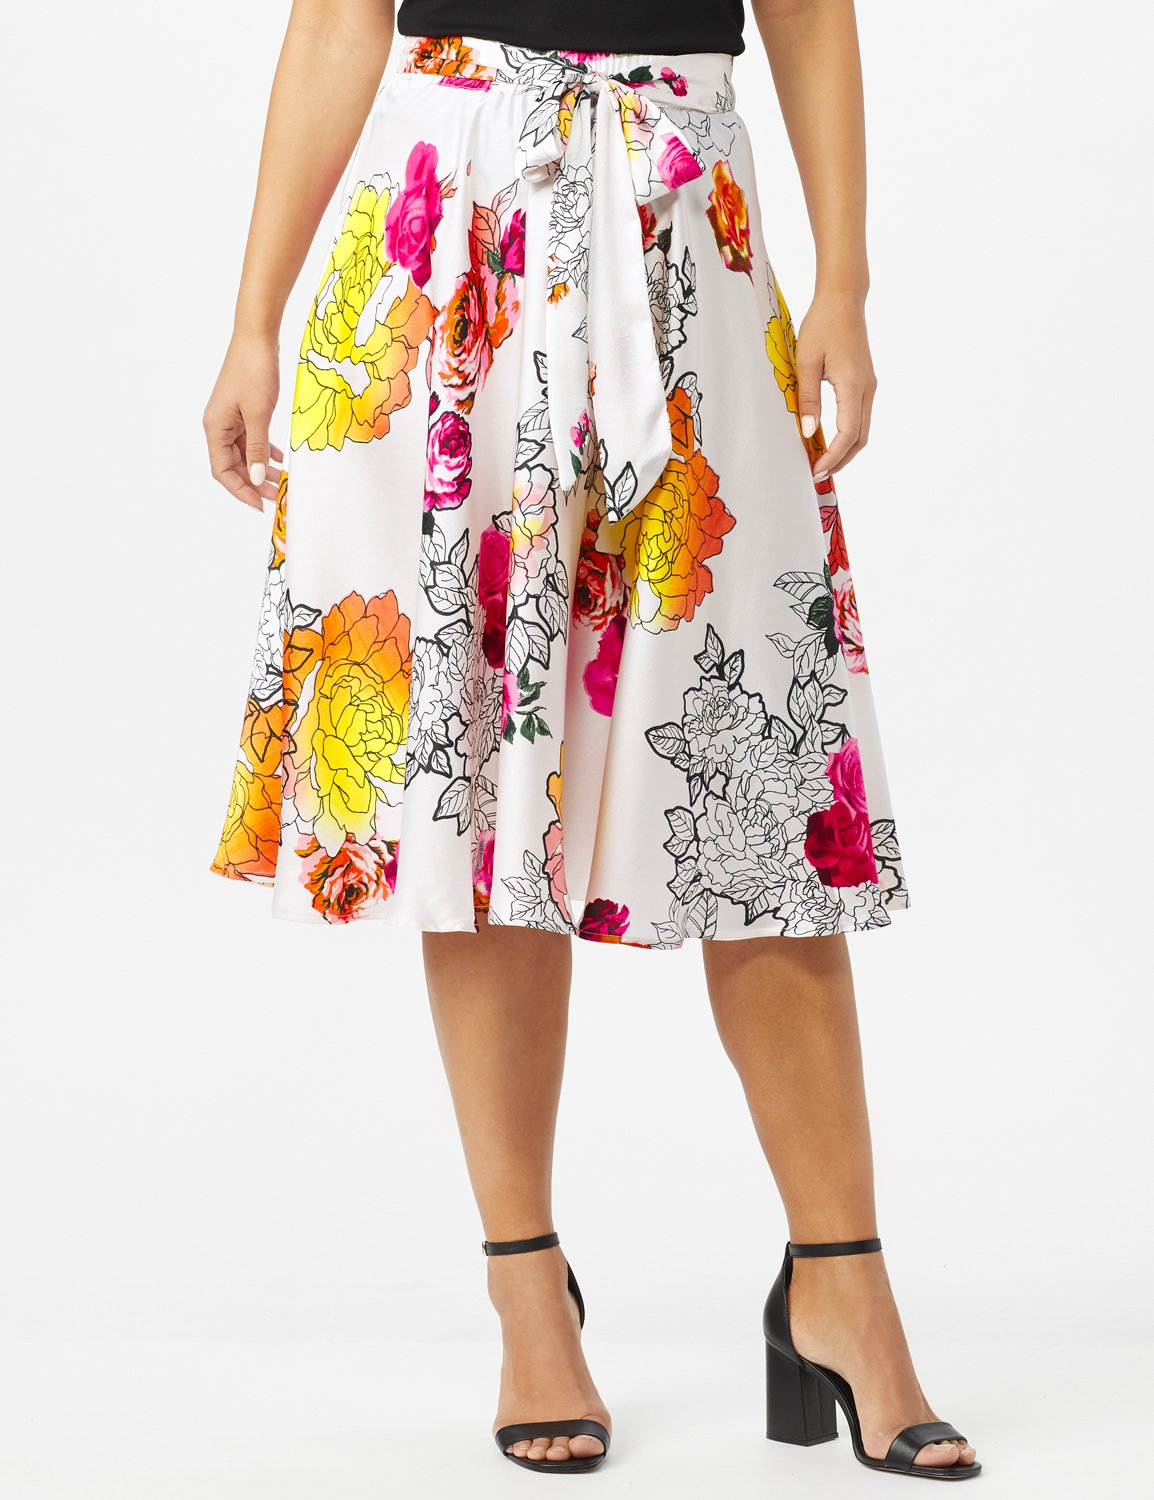 Printed Floral Skirt with All Around Elastic Waist and Tie -Red /Coral Rose - Front